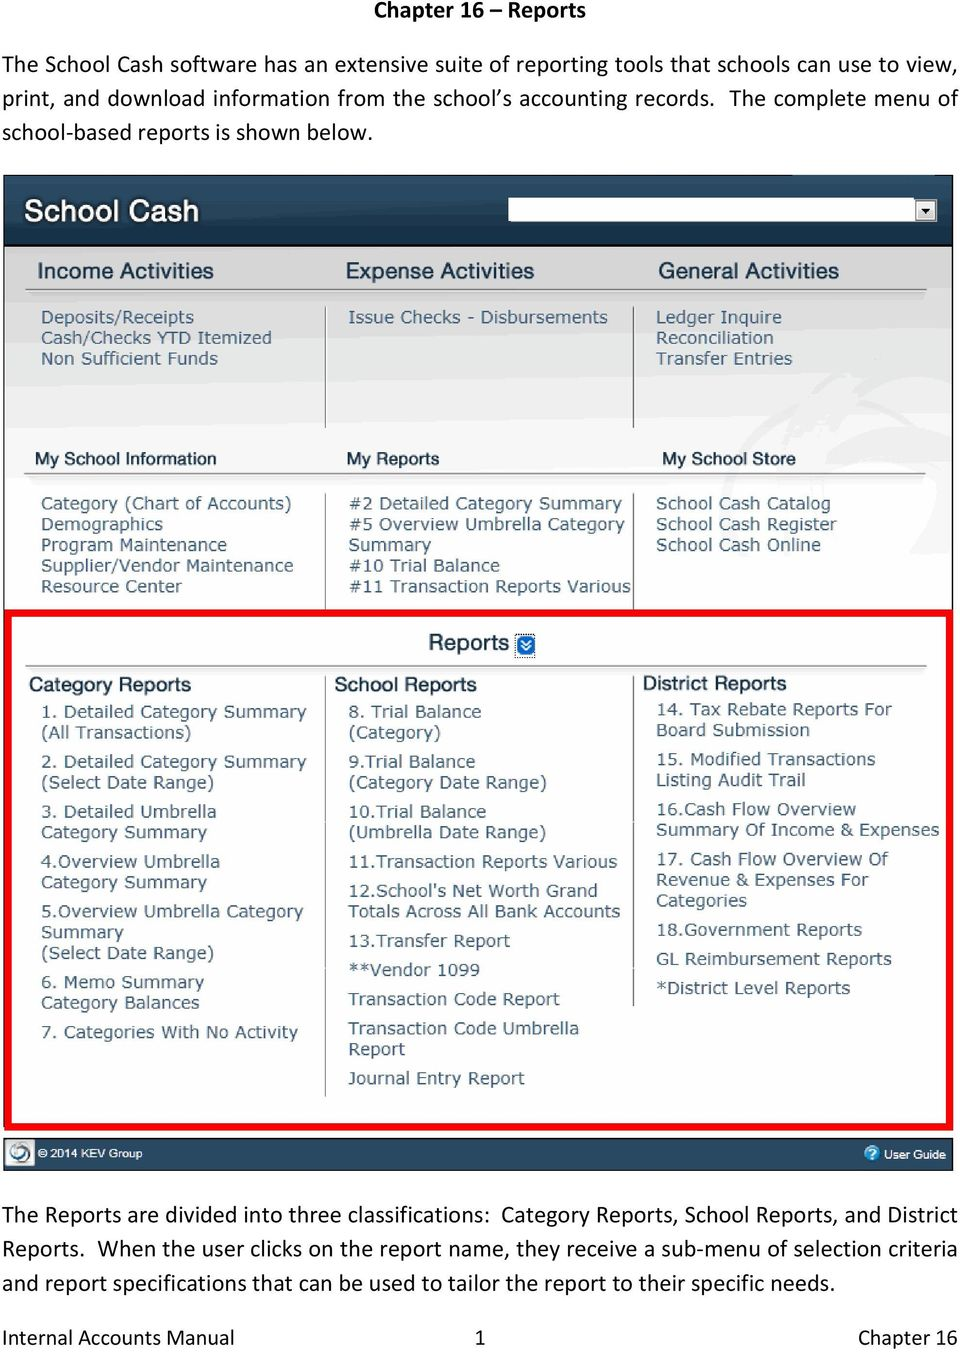 The Reports are divided into three classifications: Category Reports, School Reports, and District Reports.